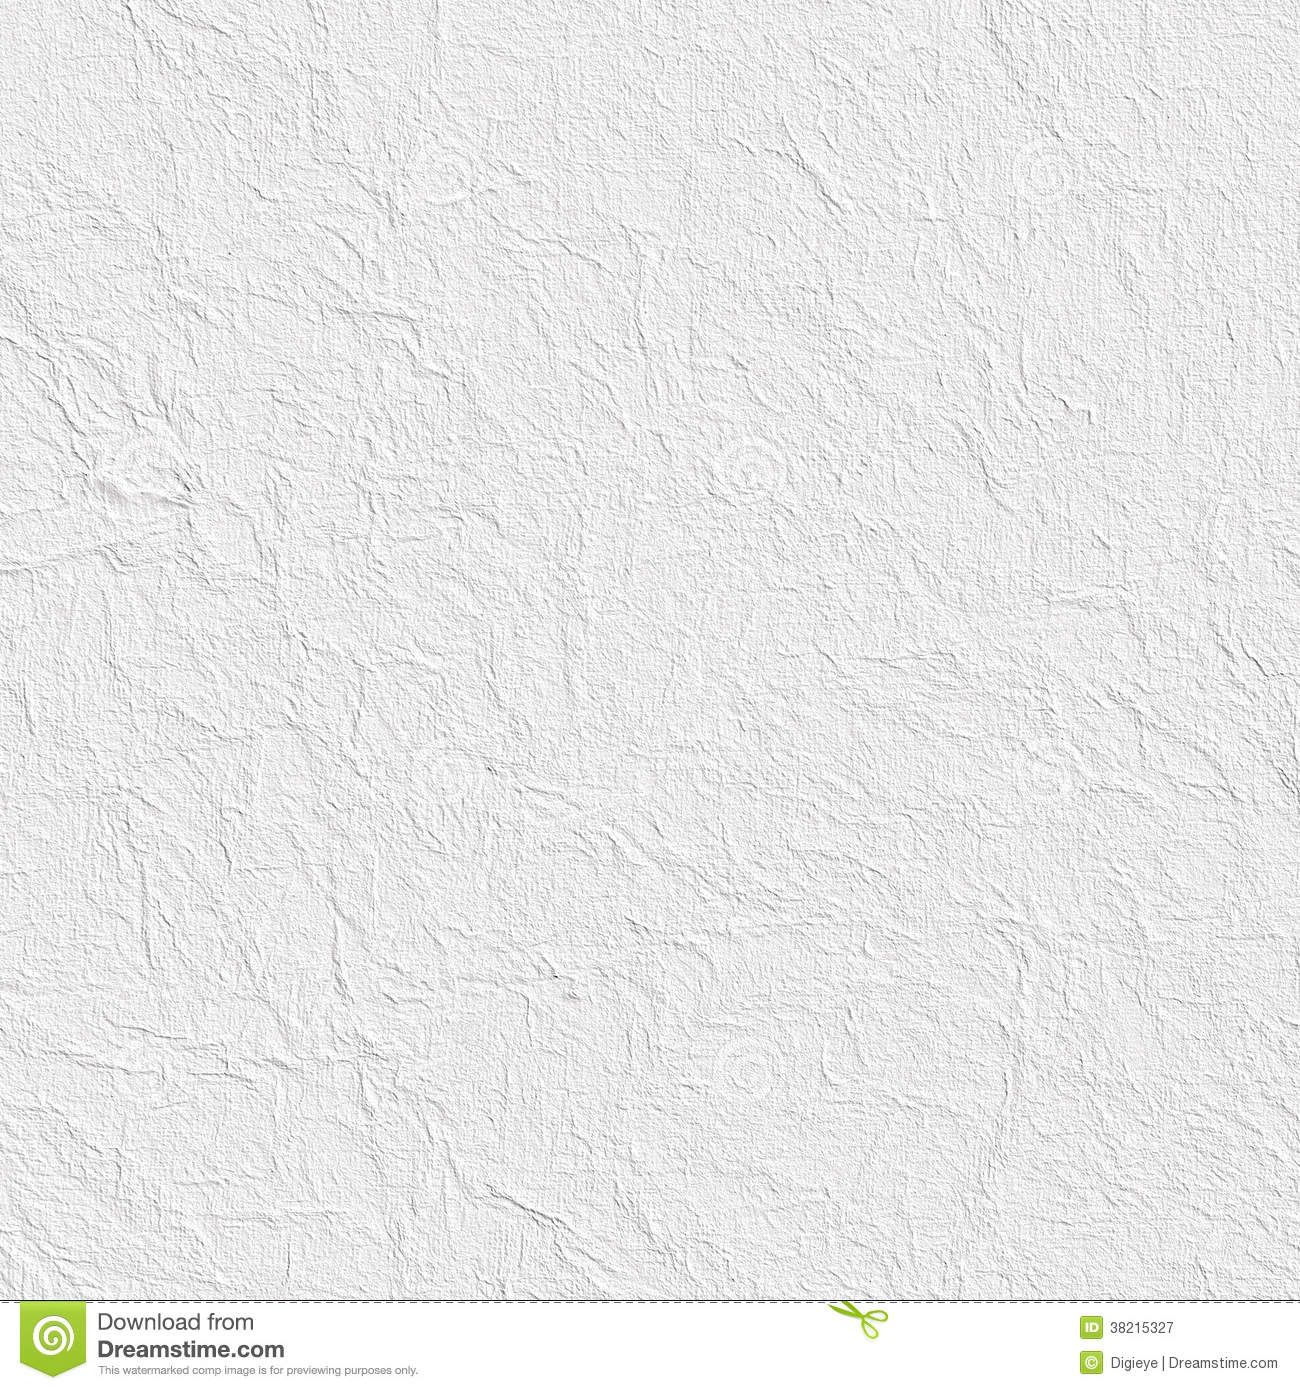 Crumpled paper sheet or plastered wall